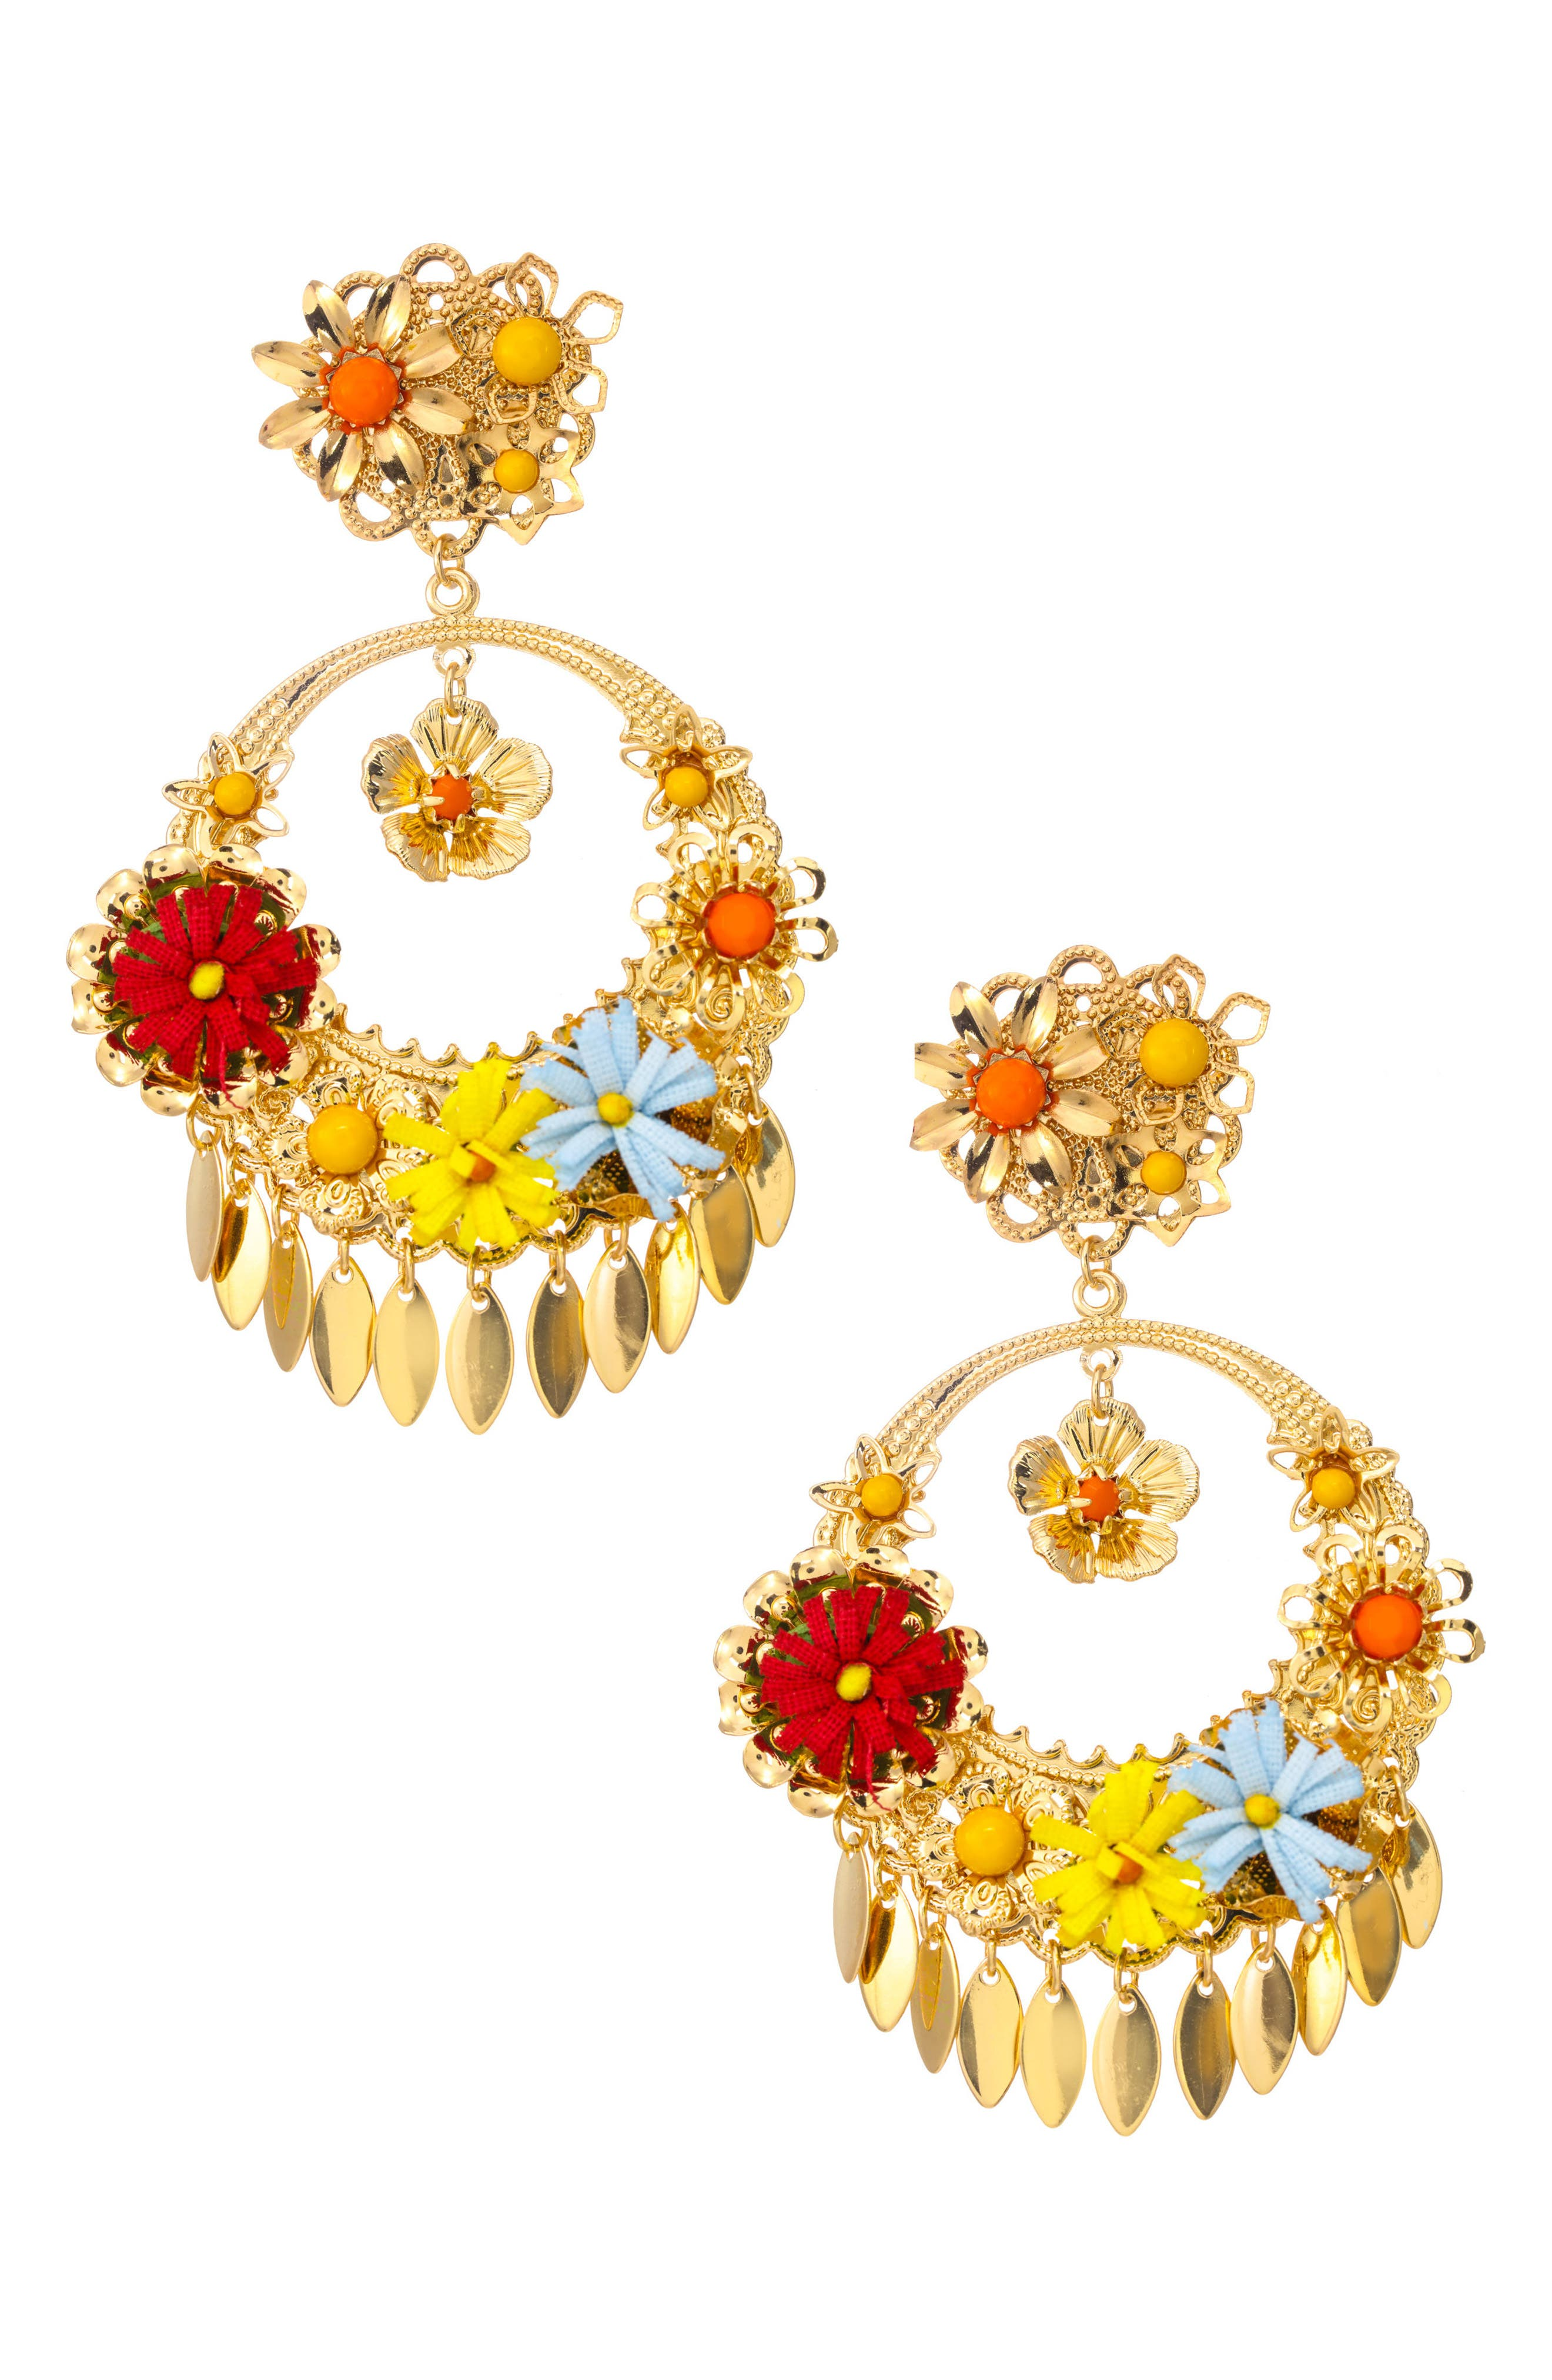 Dolce Statement Earrings,                         Main,                         color, Gold/ Multi